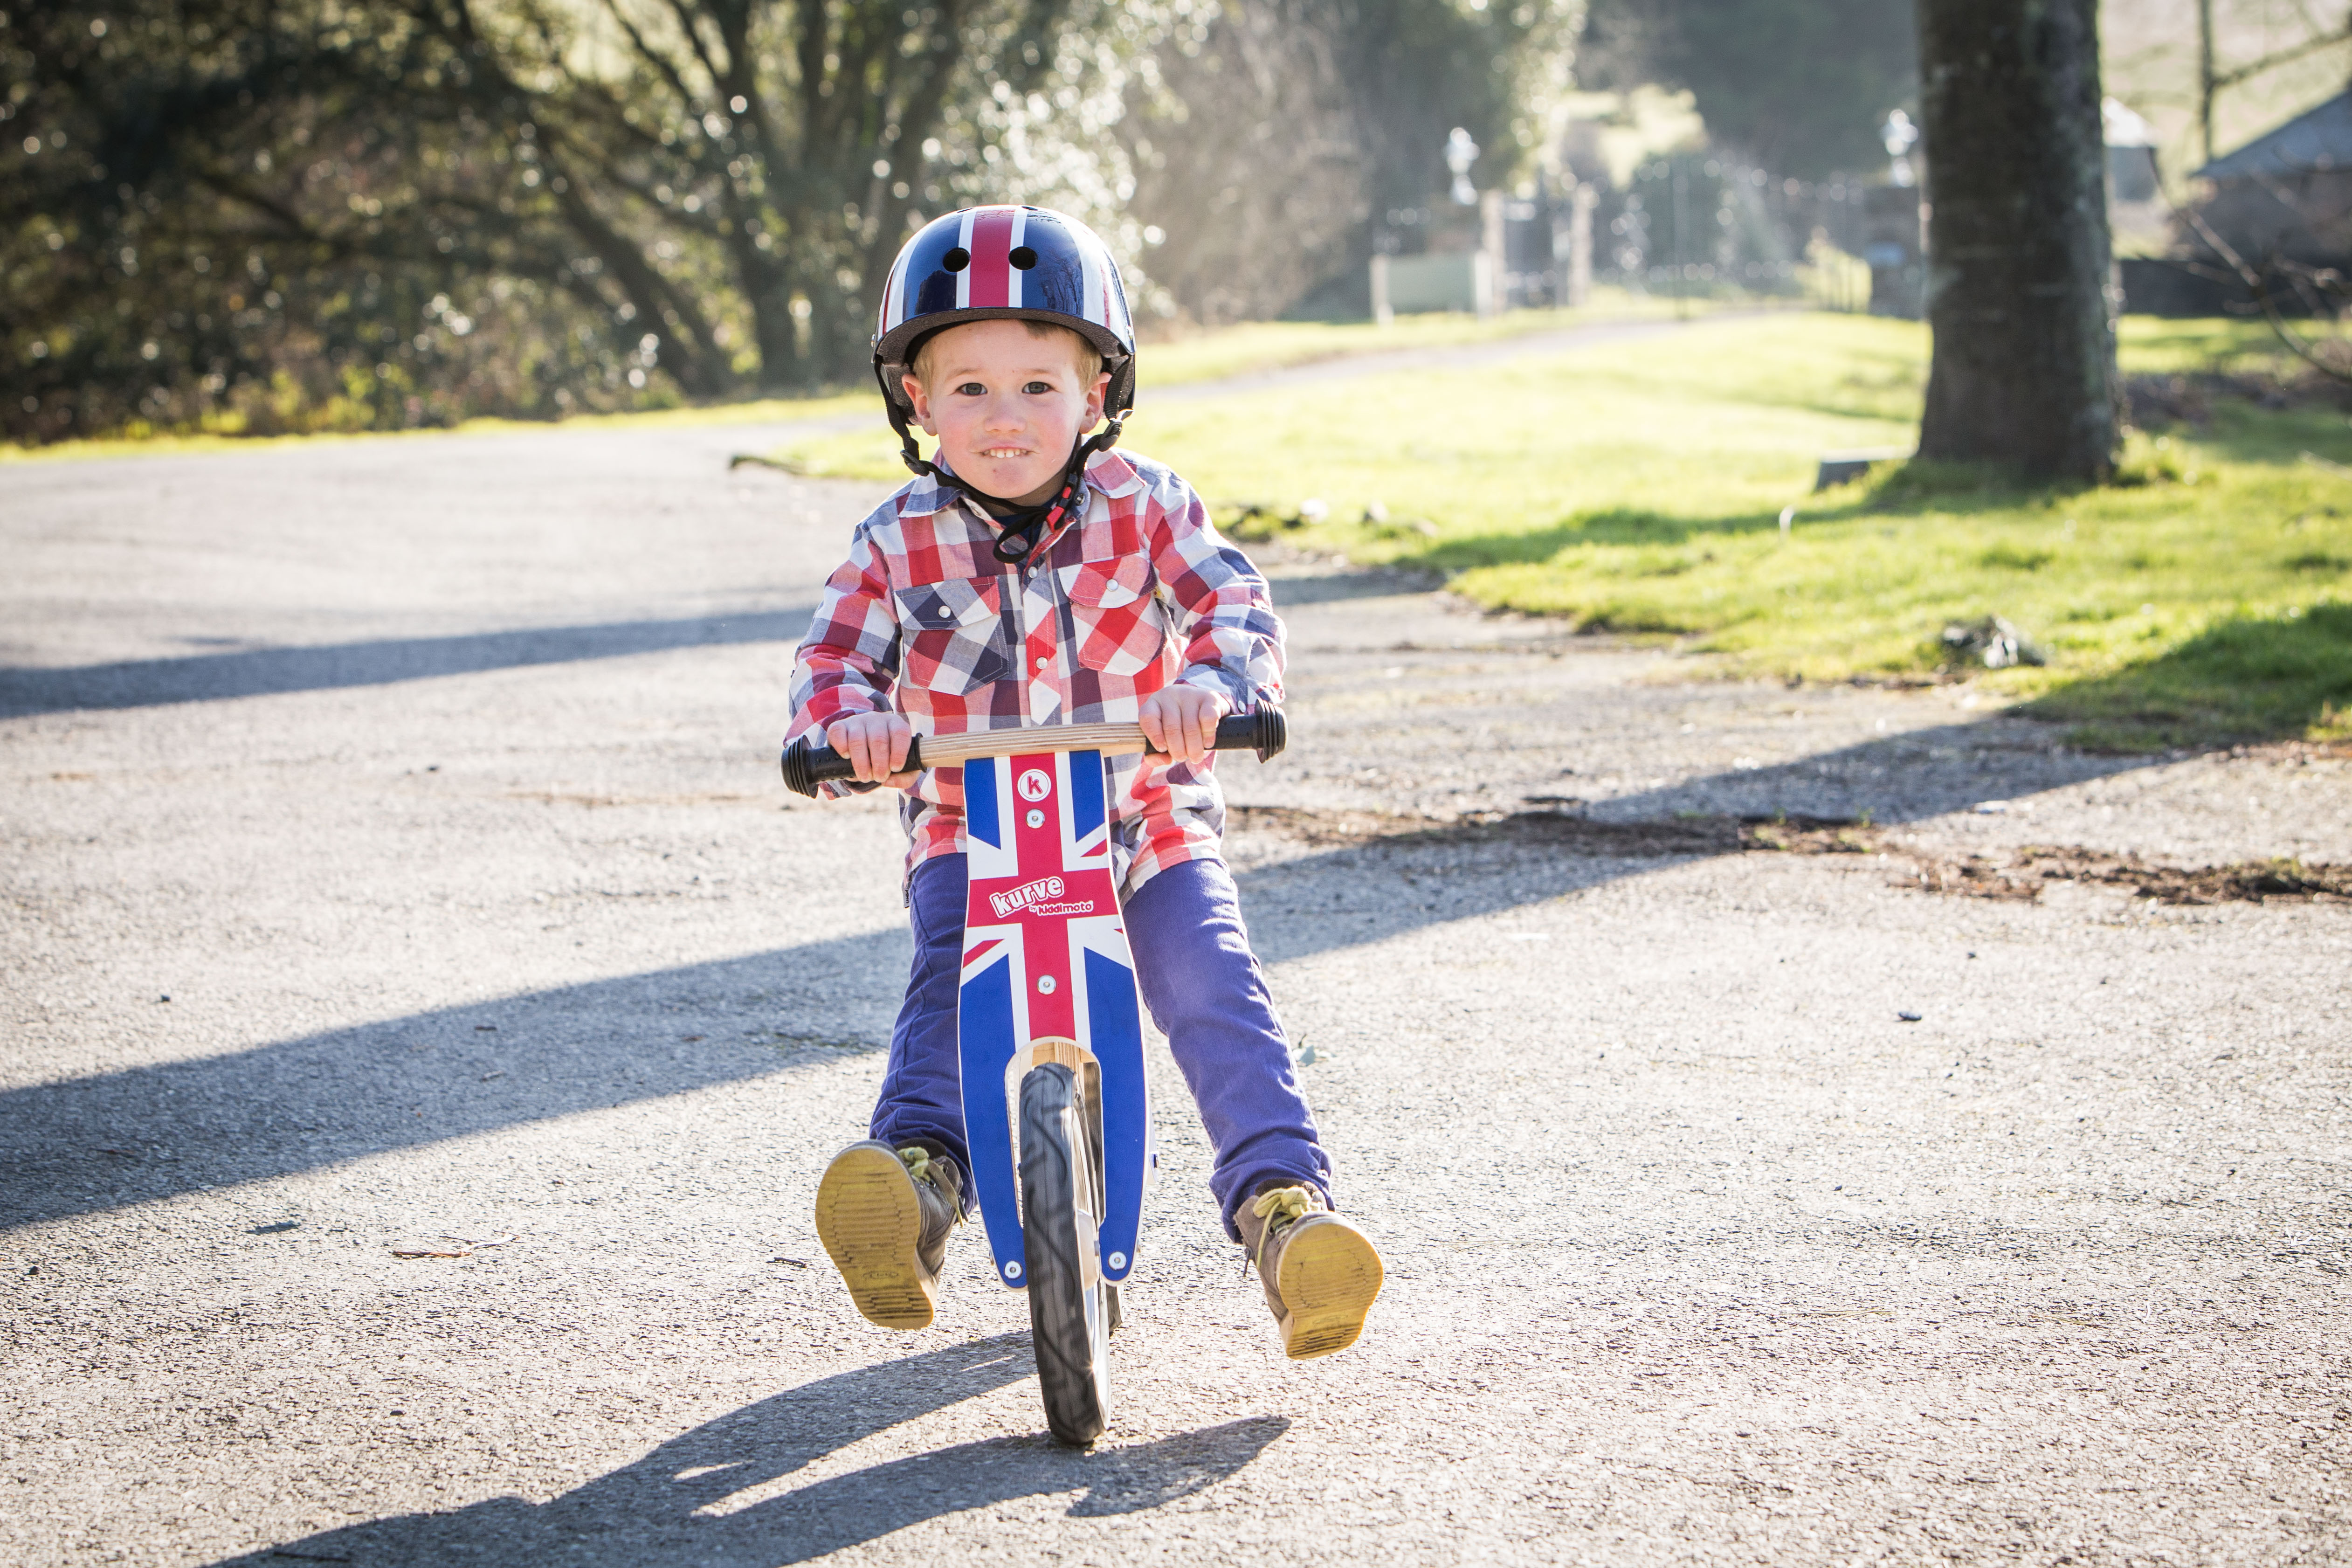 Union Jack Kurve 2, £64.99 www.kiddimoto.co.uk:kurve:union-jack-kurve.jpg